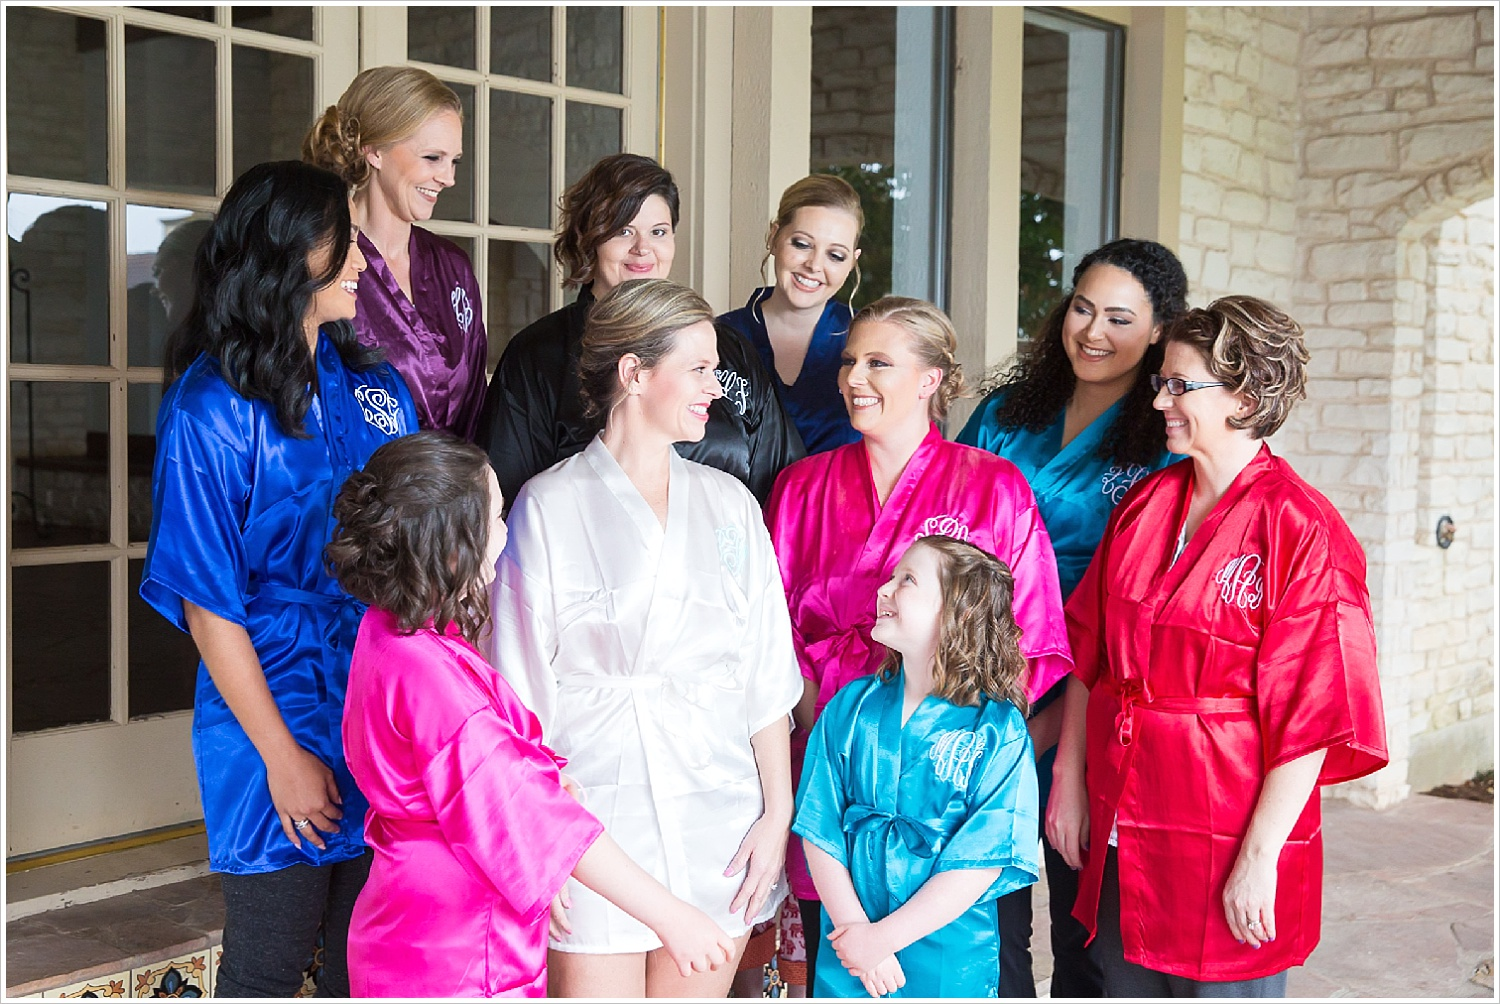 Bride and bridesmaids in monogrammed robes prior to wedding ceremony